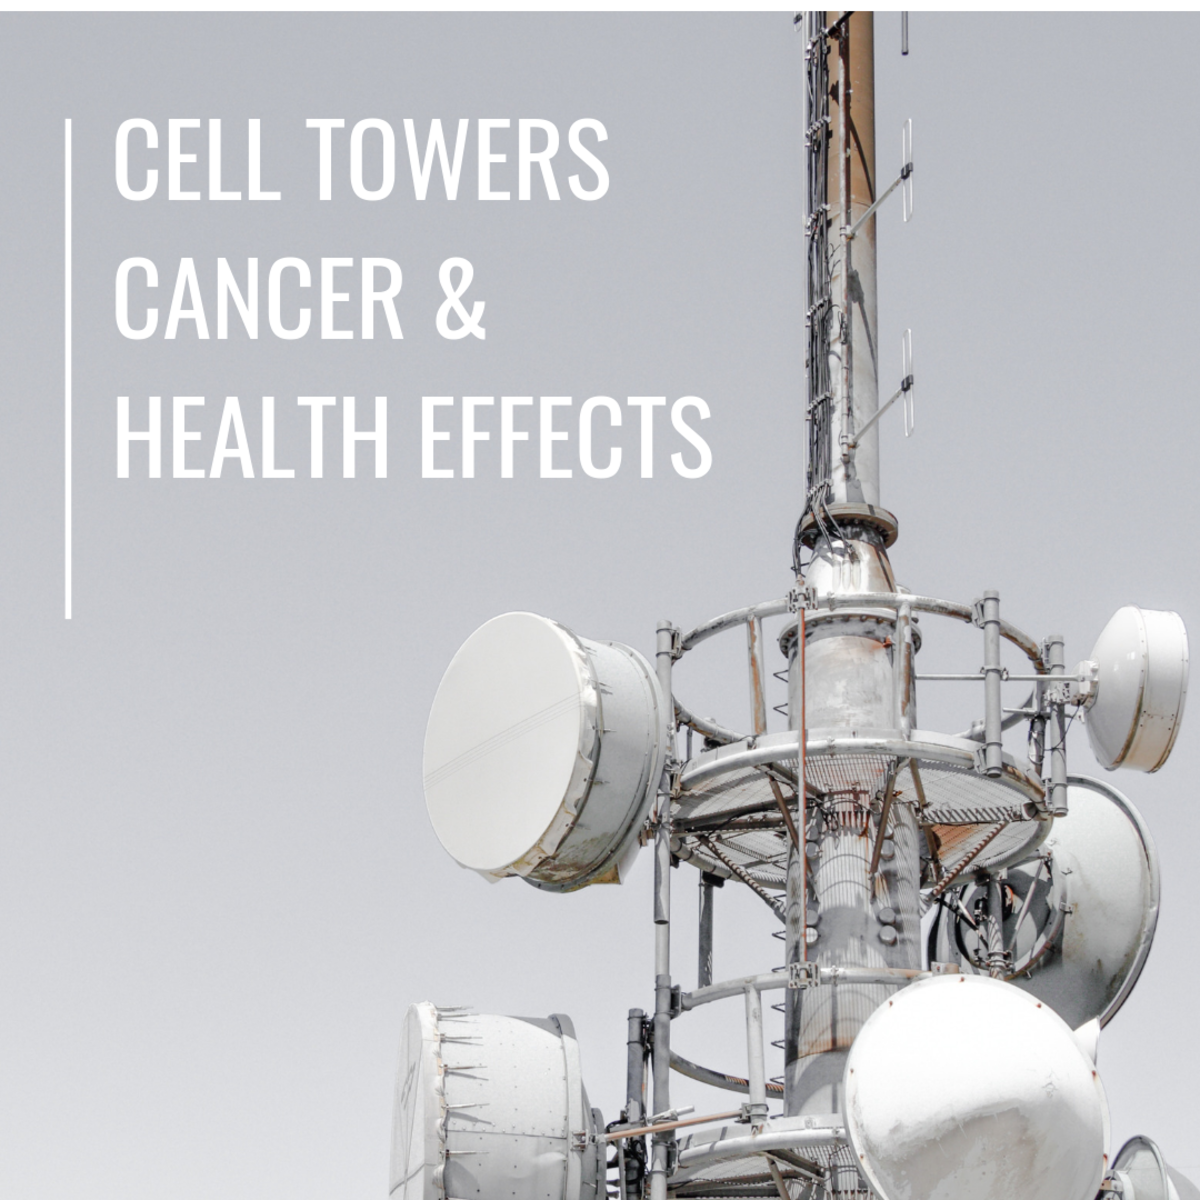 Do Cell Phone Towers Cause Cancer?